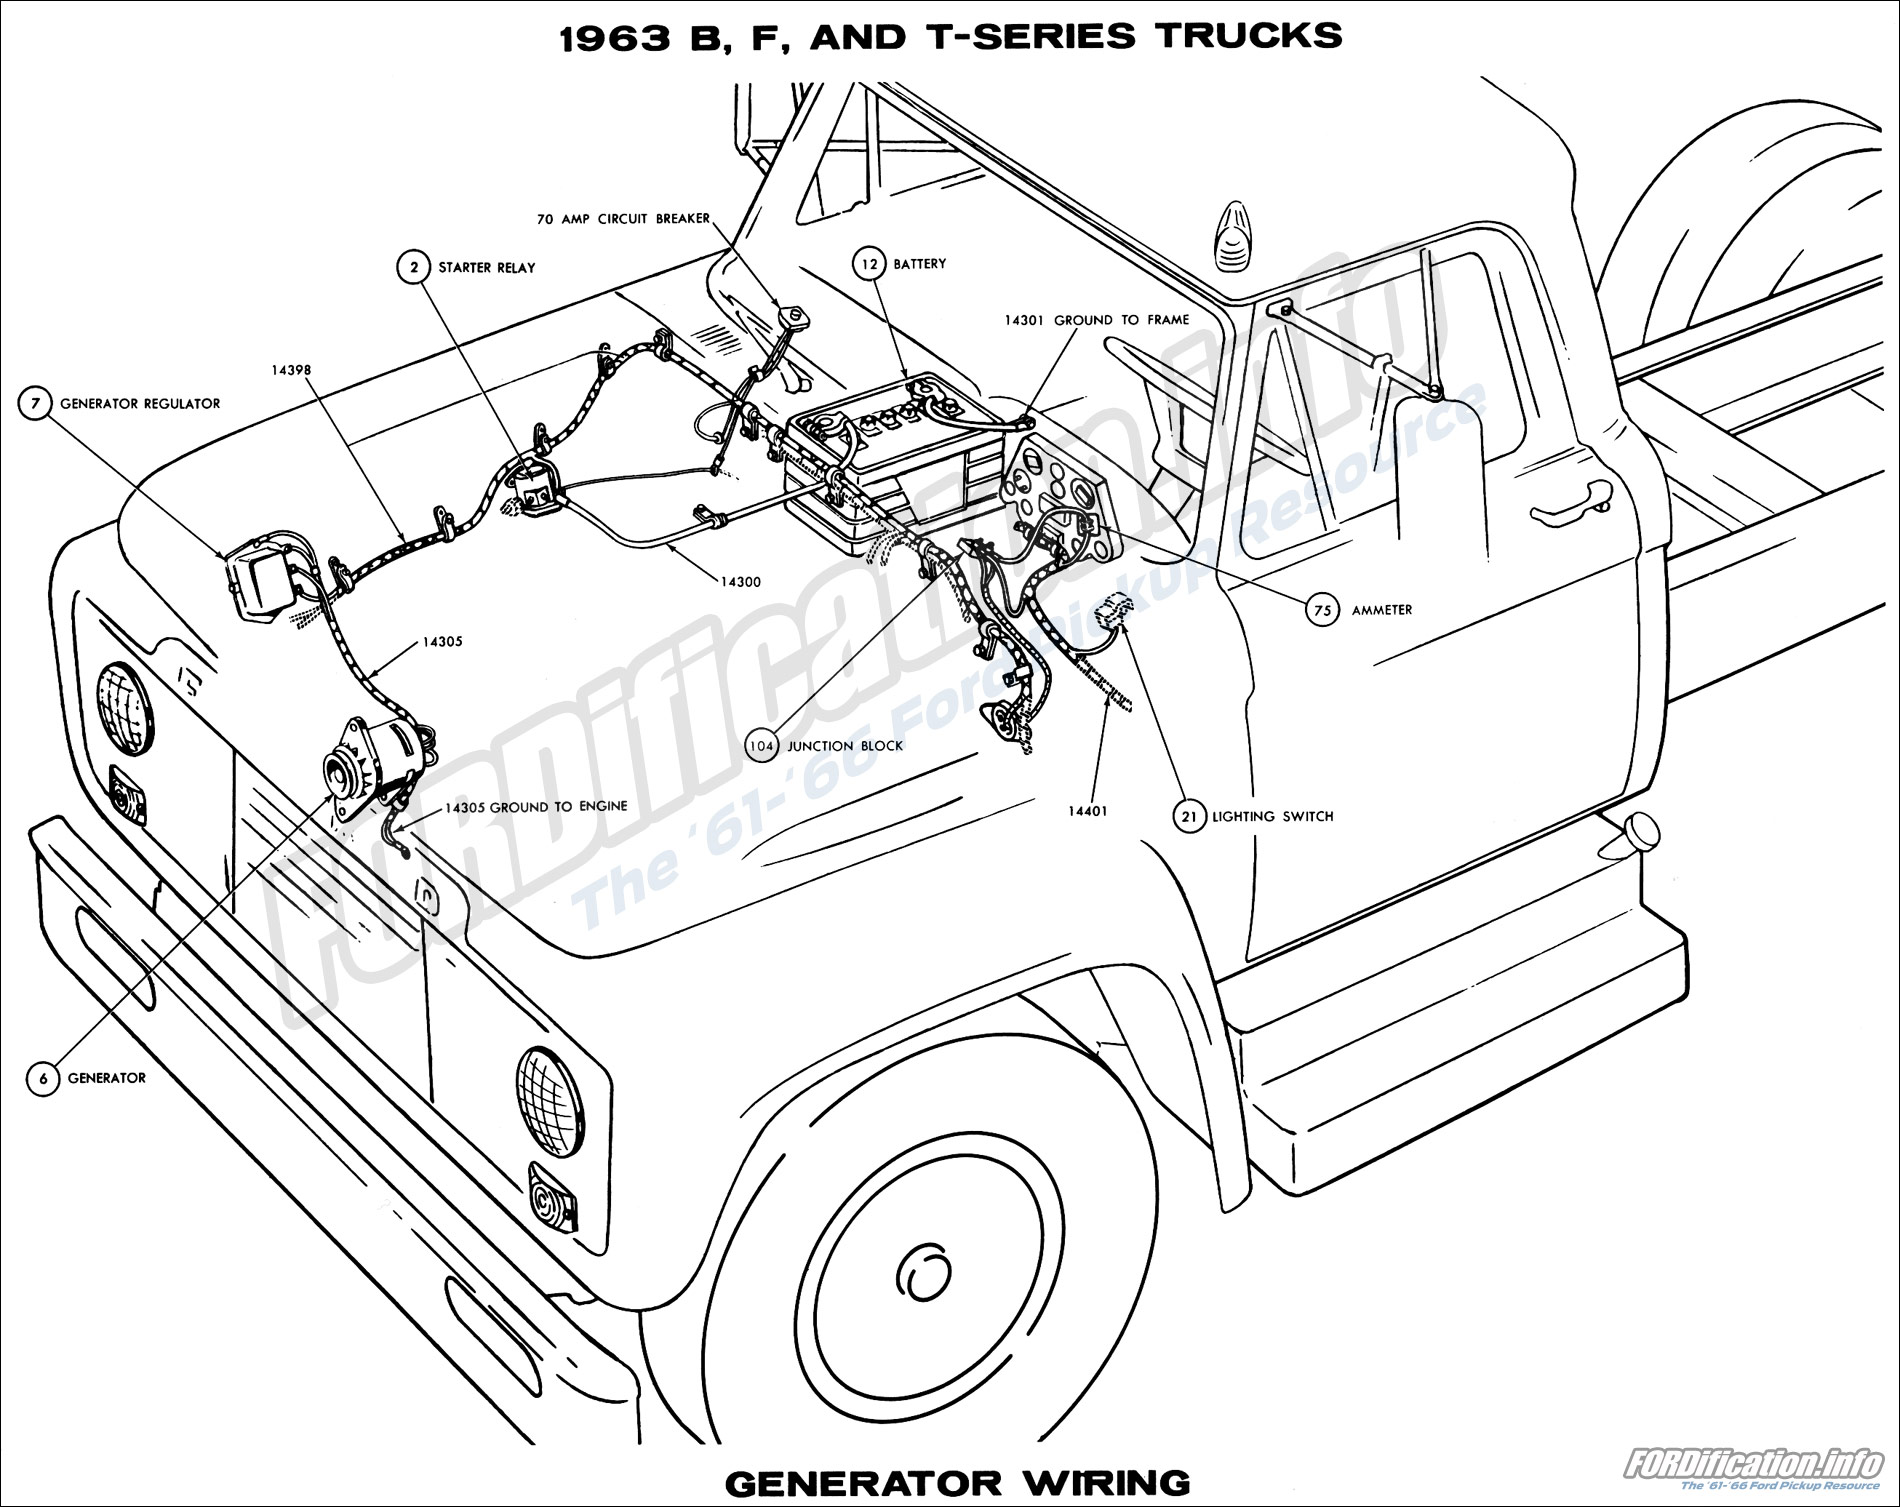 1965 Ford Thunderbird Wiring Diagram Fuel Pictures to Pin